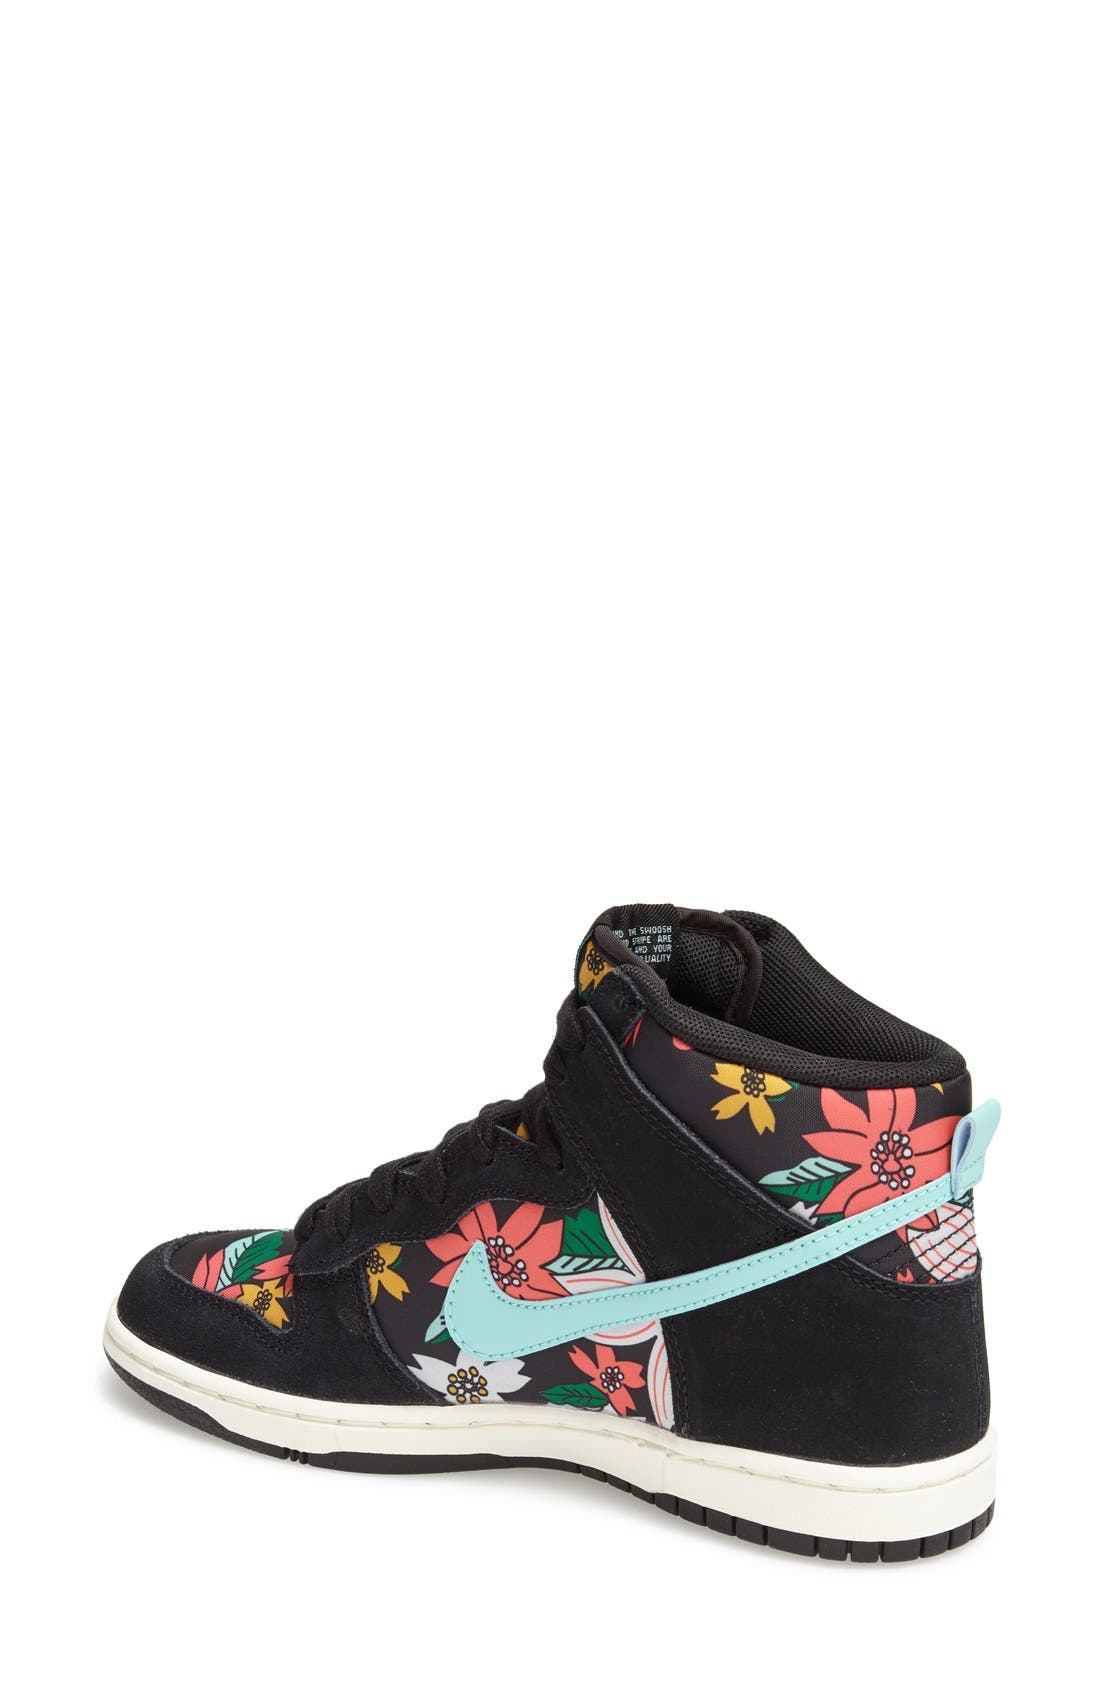 Alternate Image 2  - Nike 'Dunk Hi - Skinny Print' High Top Basketball Sneaker